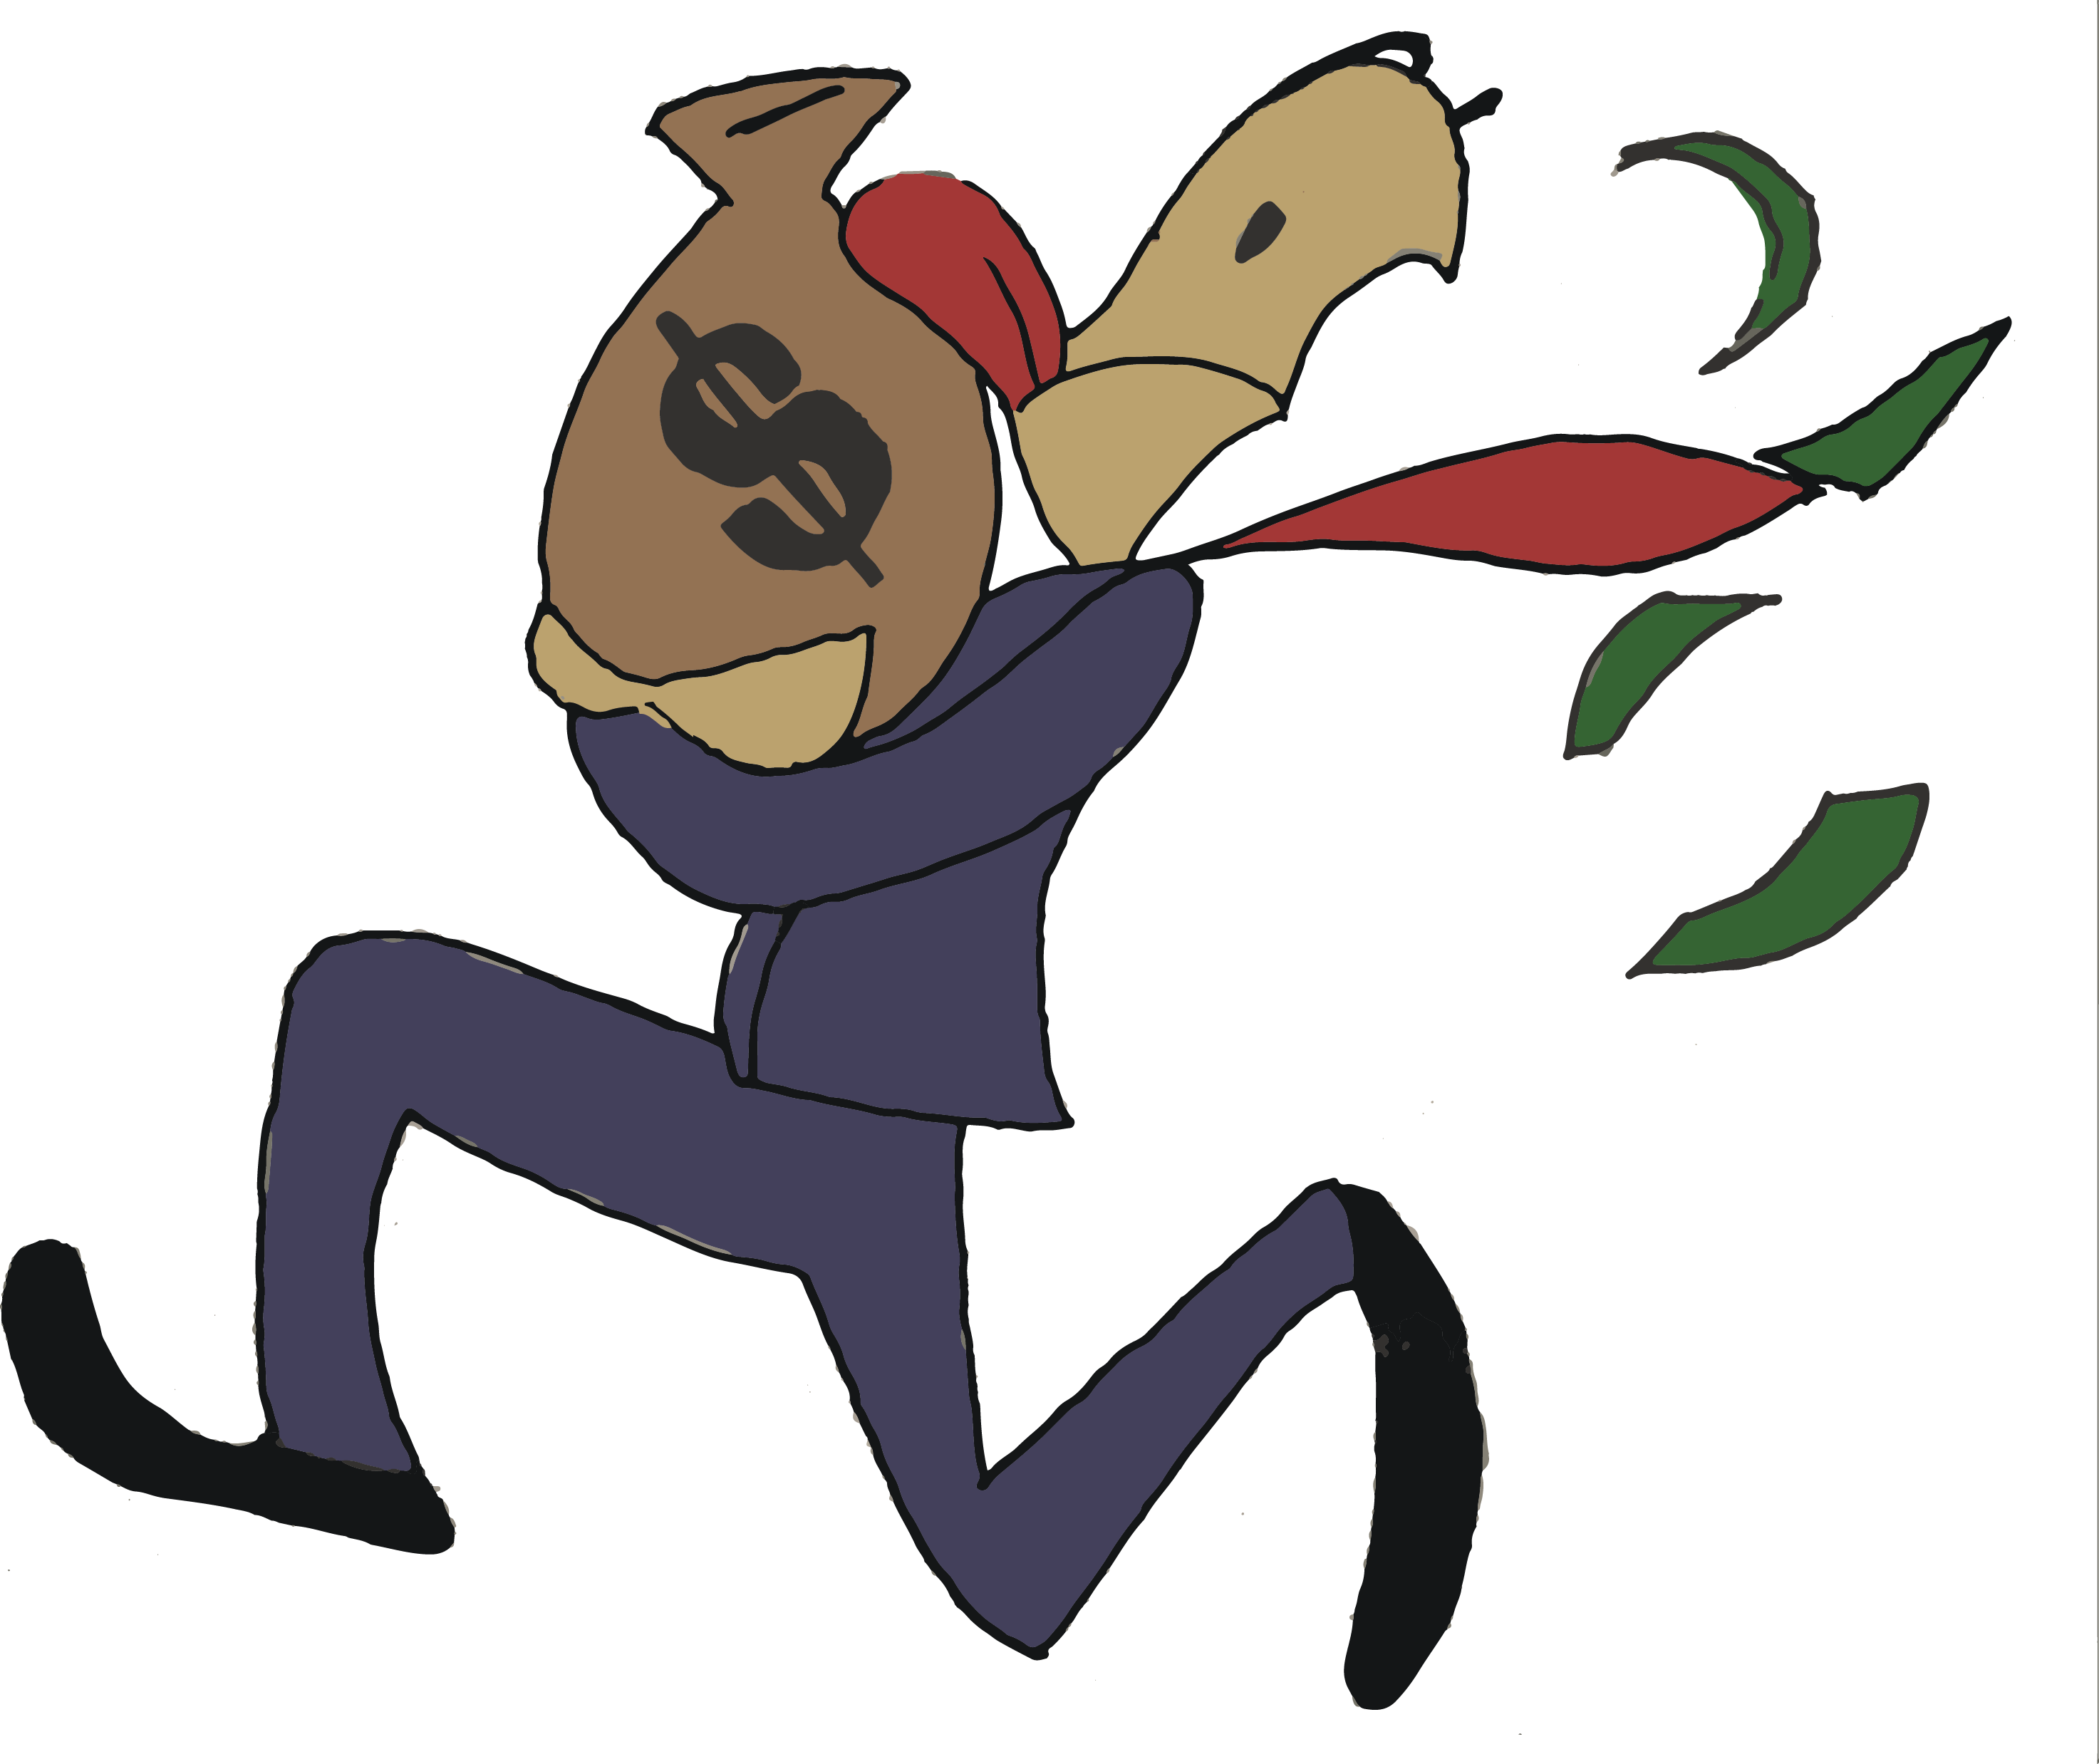 illustration of a rich man in a suit running away with a sack of money.